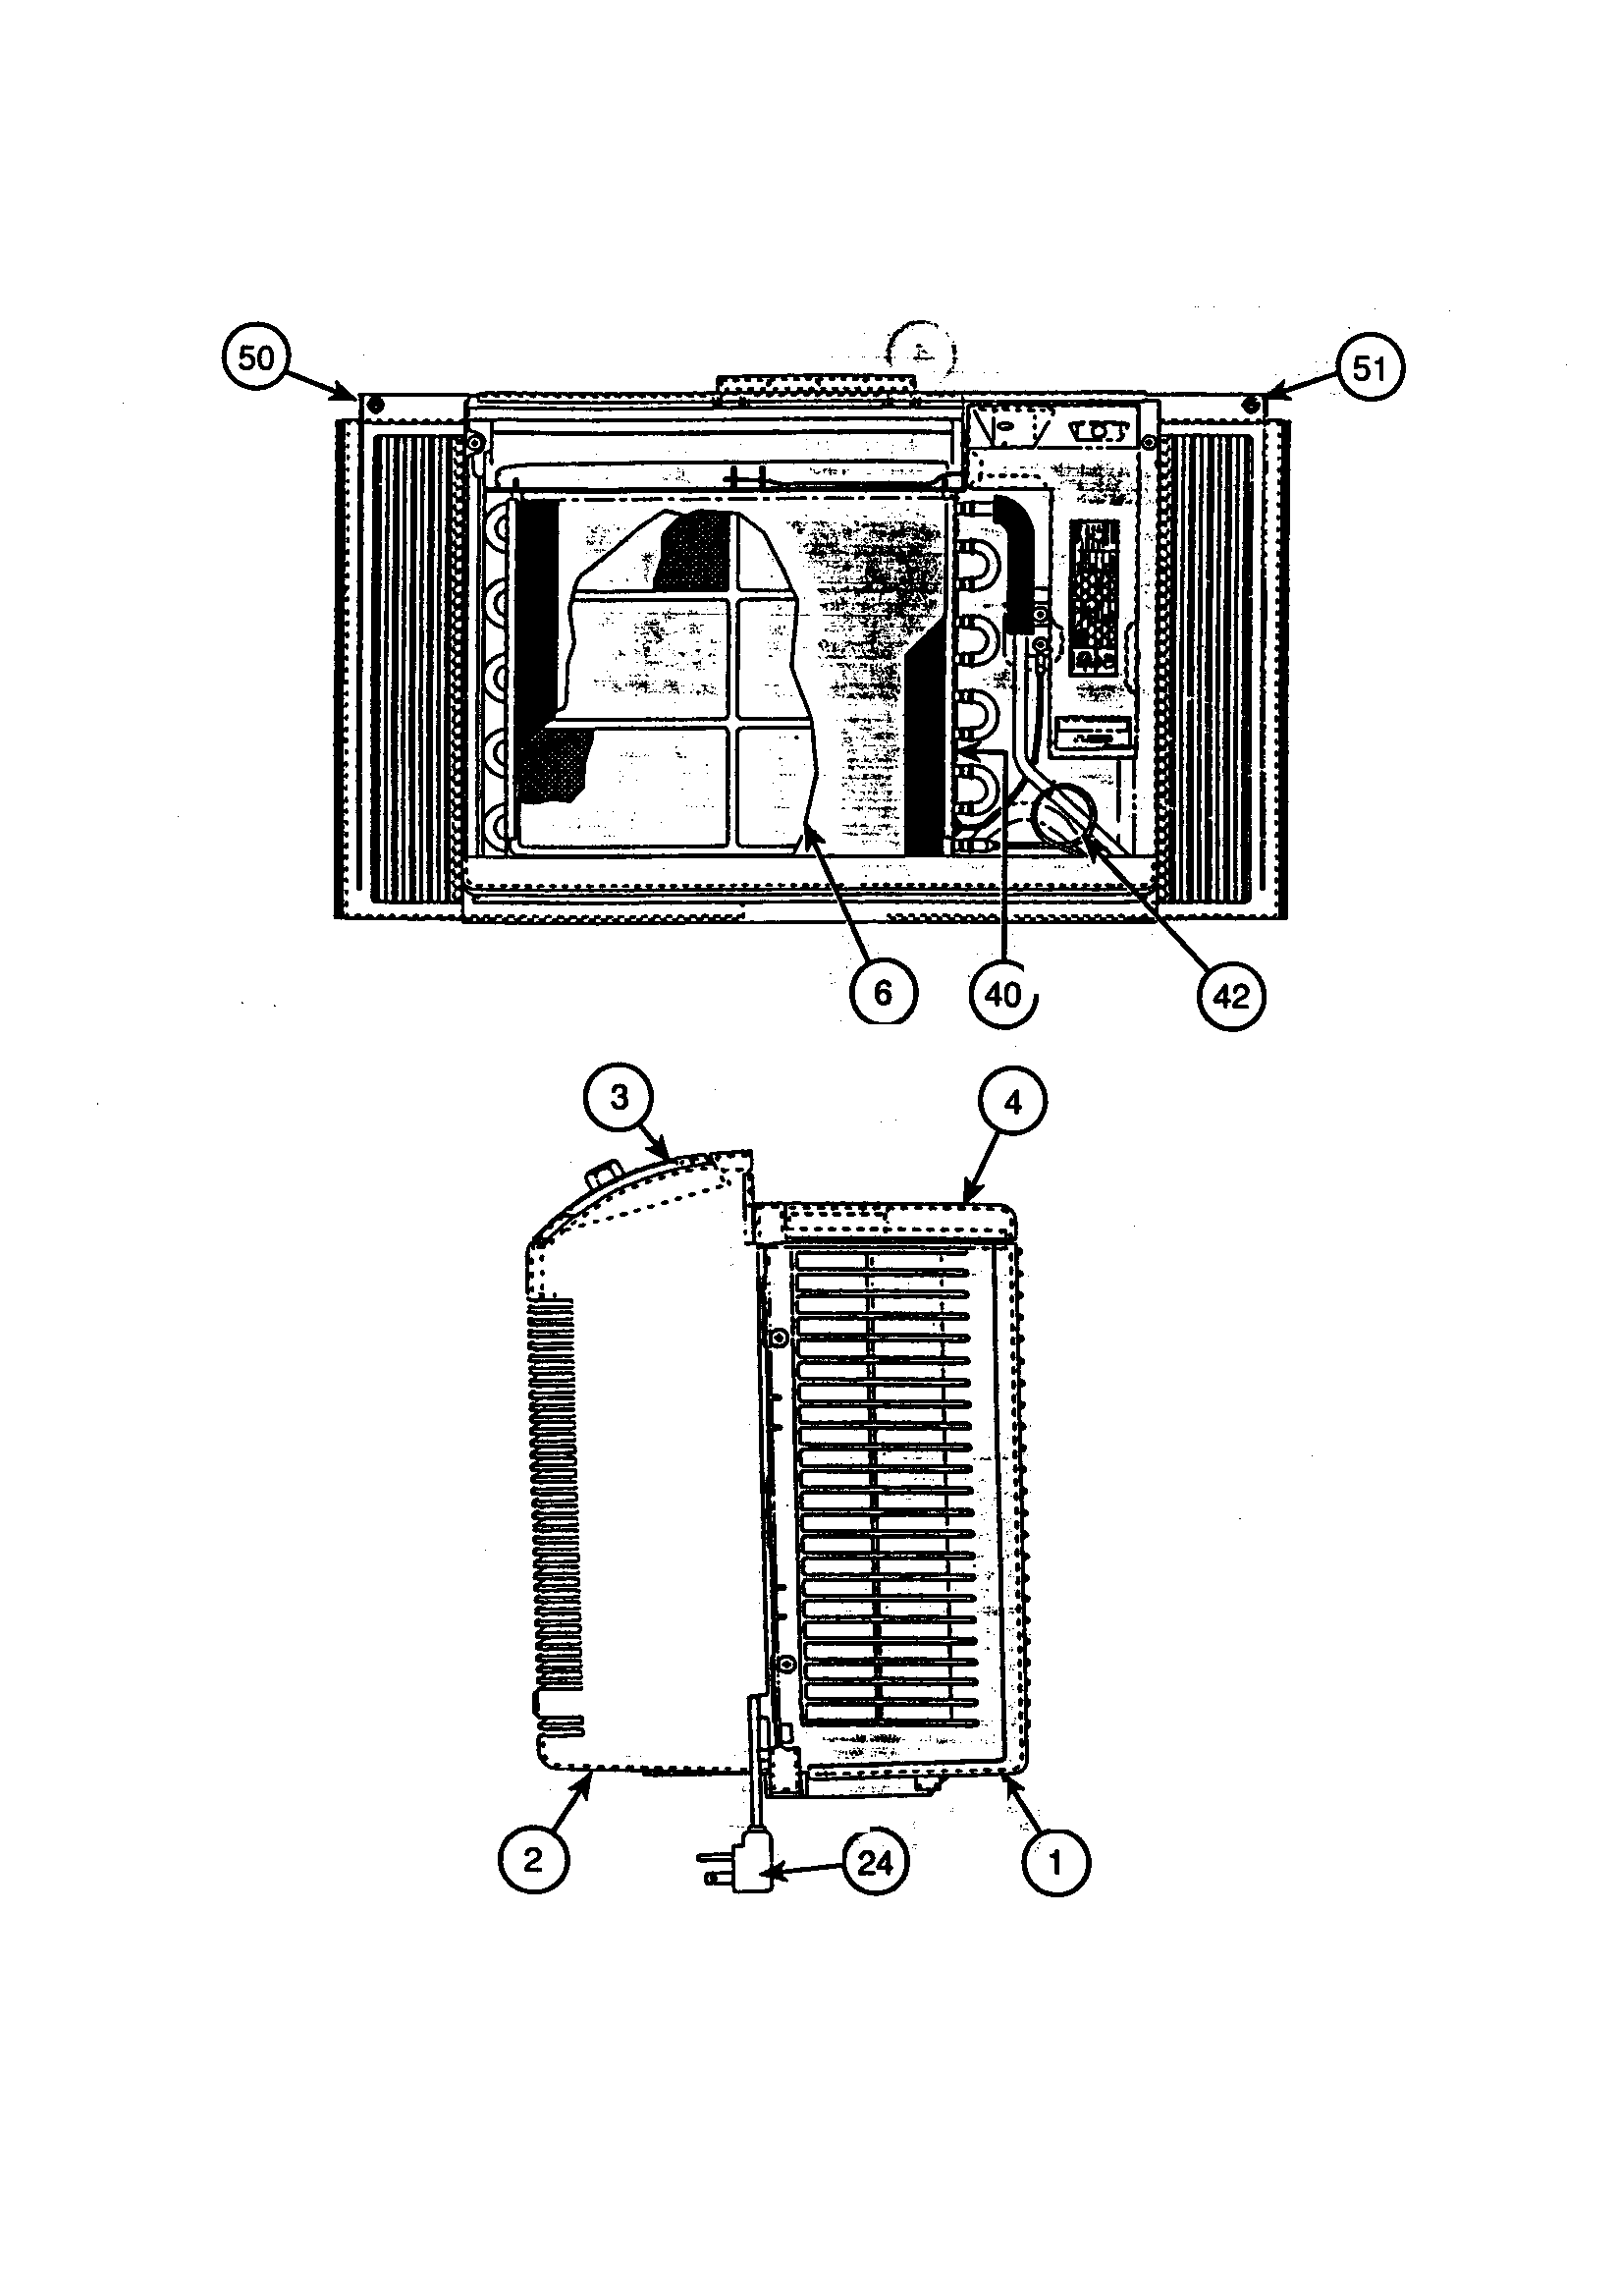 Carrier Chiller Diagram Wiring 30gb 35